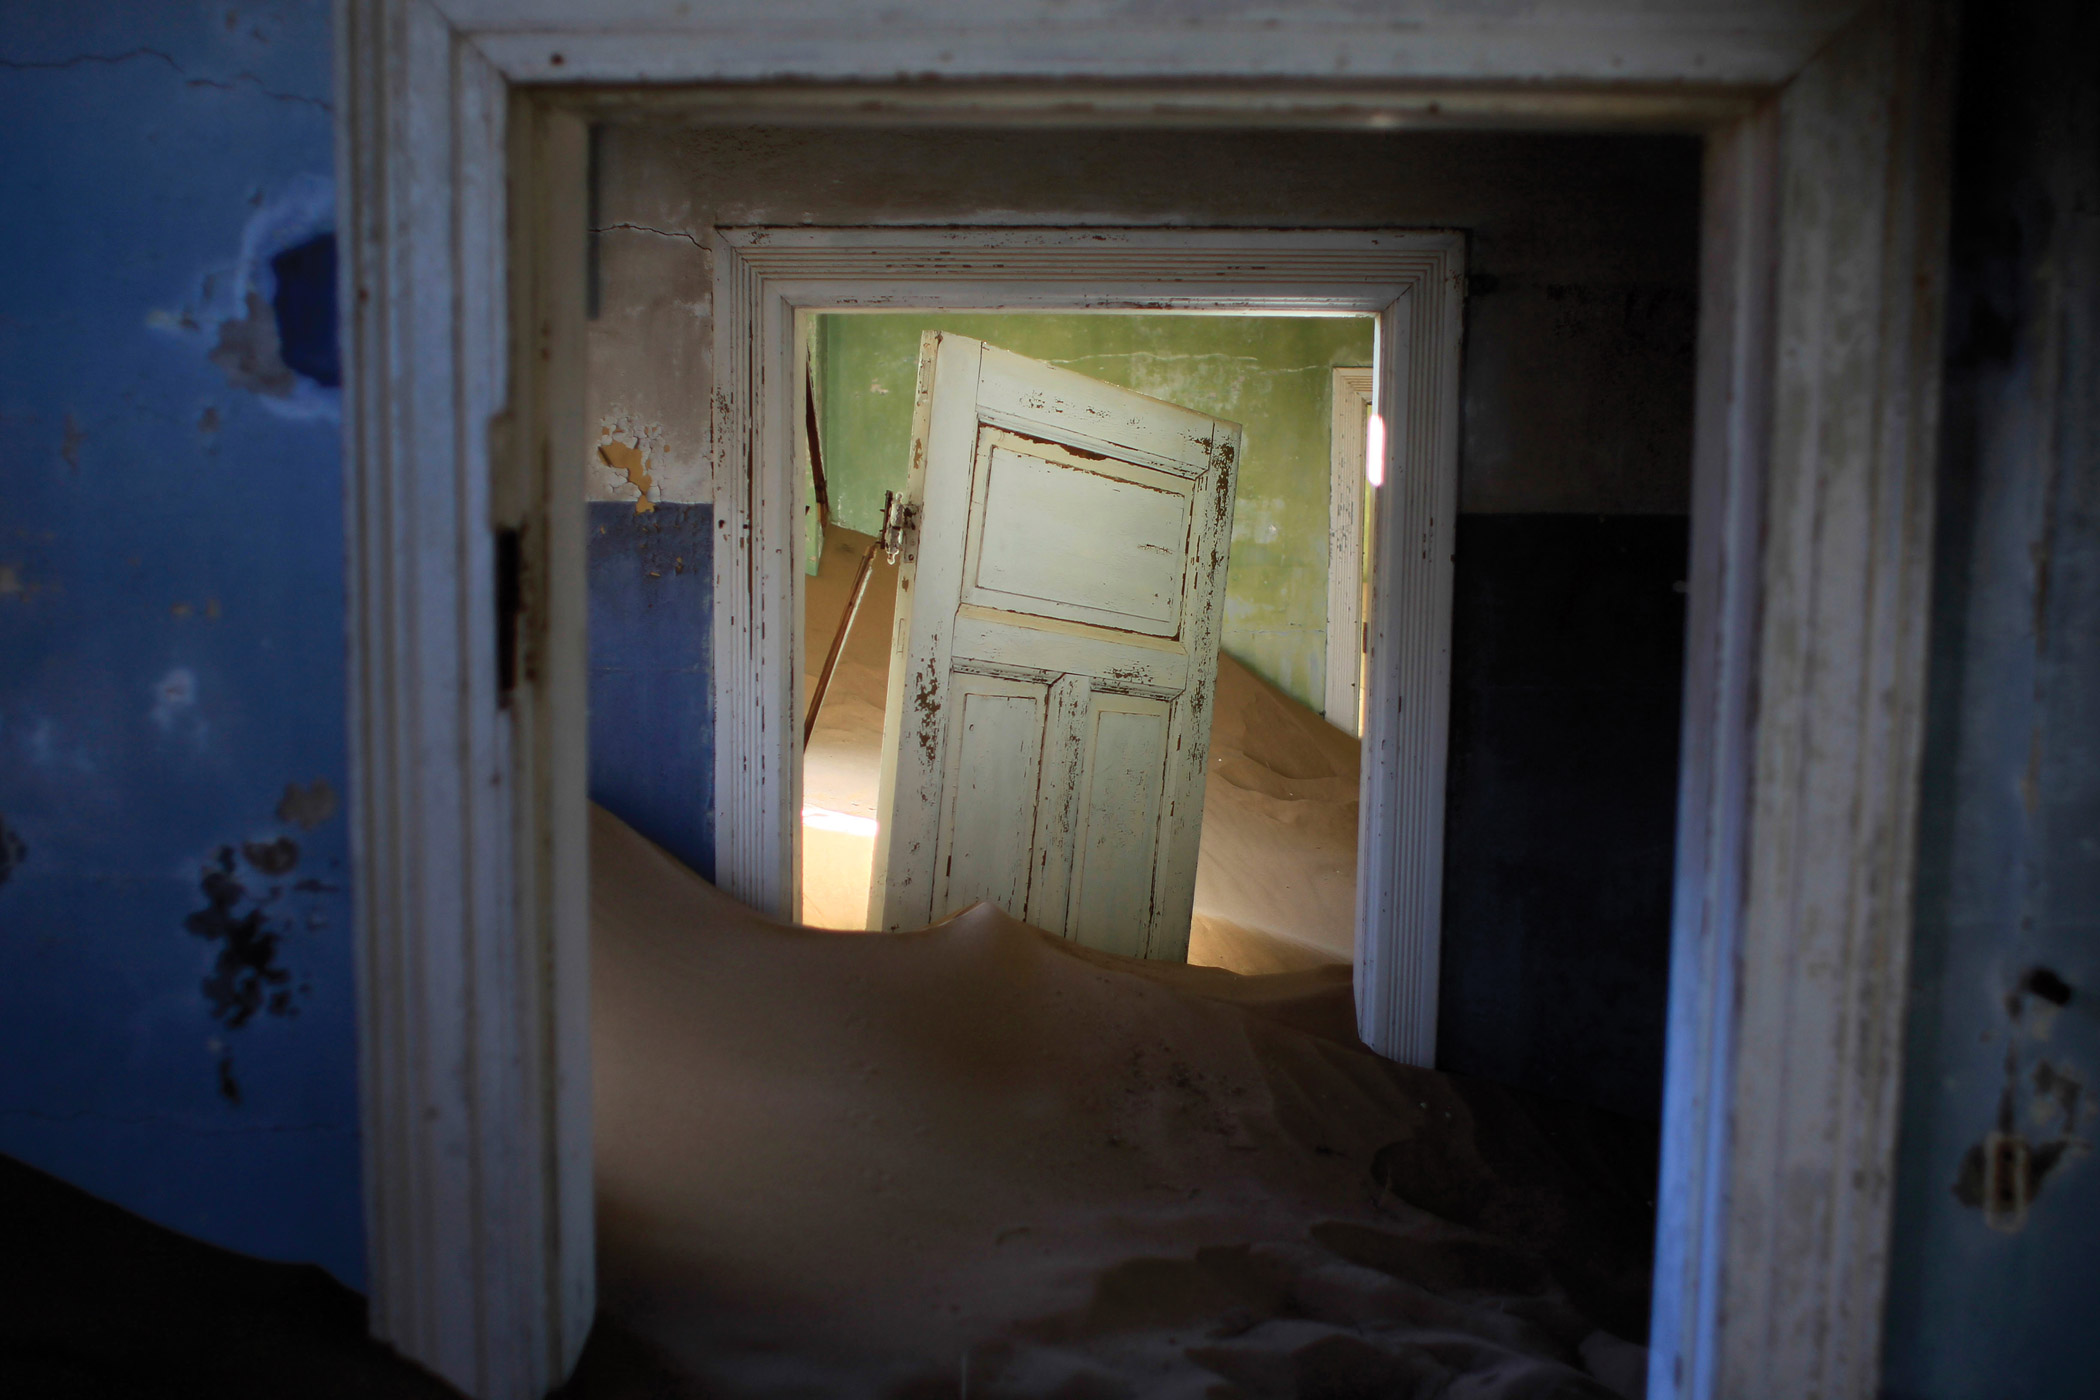 In this July 23, 2013 photo, sand fills an abandoned house in Kolmanskop, Namibia. Kolmanskop, was a diamond mining town south of Namibia, built in 1908 and deserted in 1956. SInce then, the desert slowly reclaims its territory, with sand invading the buildings where 350 German colonists and more than 800 local workers lived during its hay-days of the 1920s.